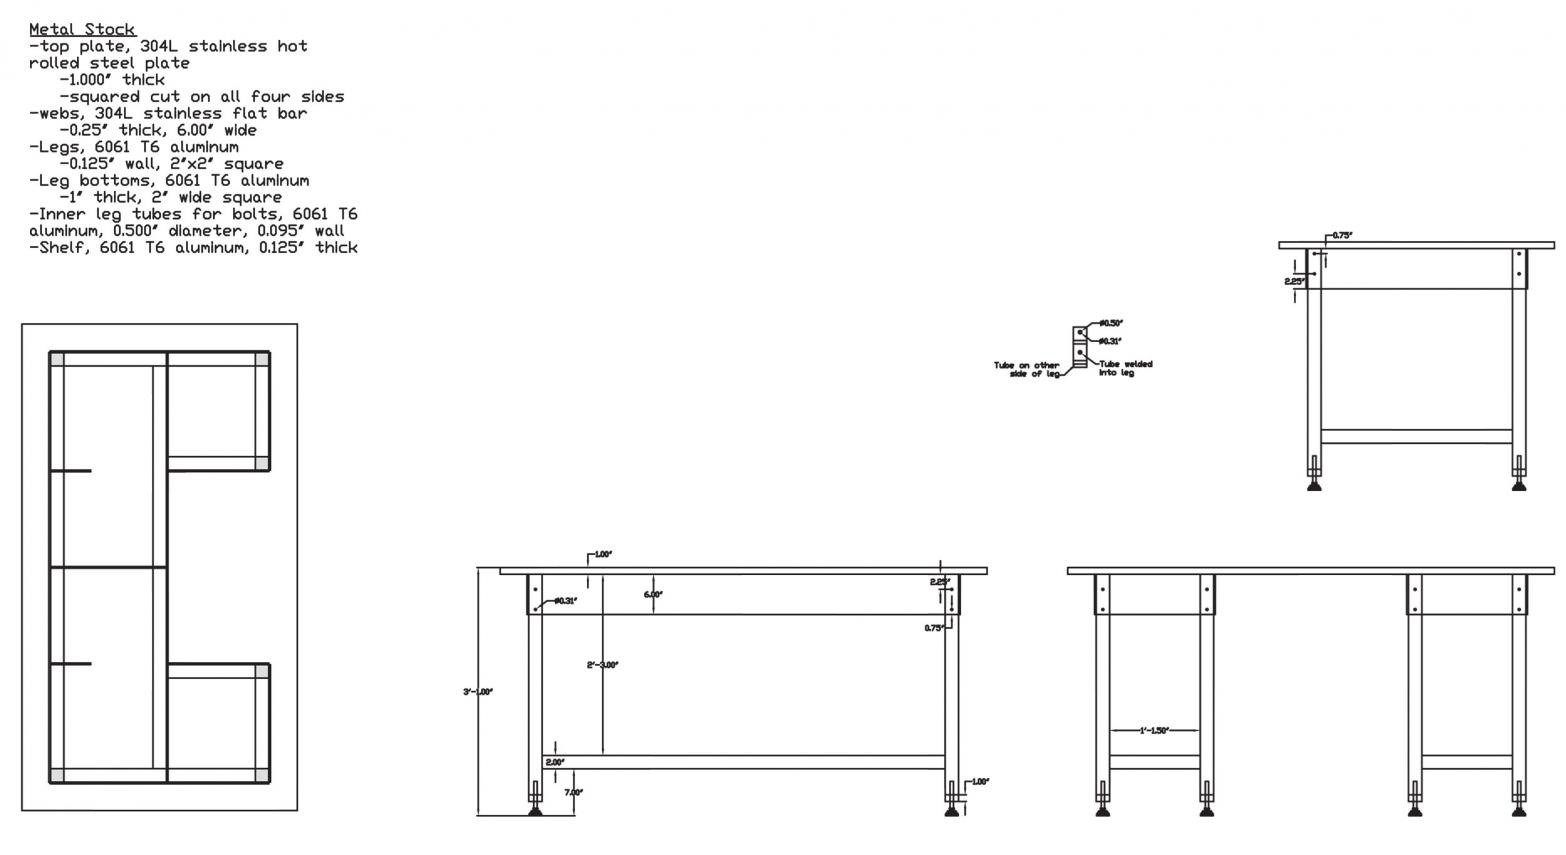 Welding Table Diagram Wiring Diagrams For Design Mig 9